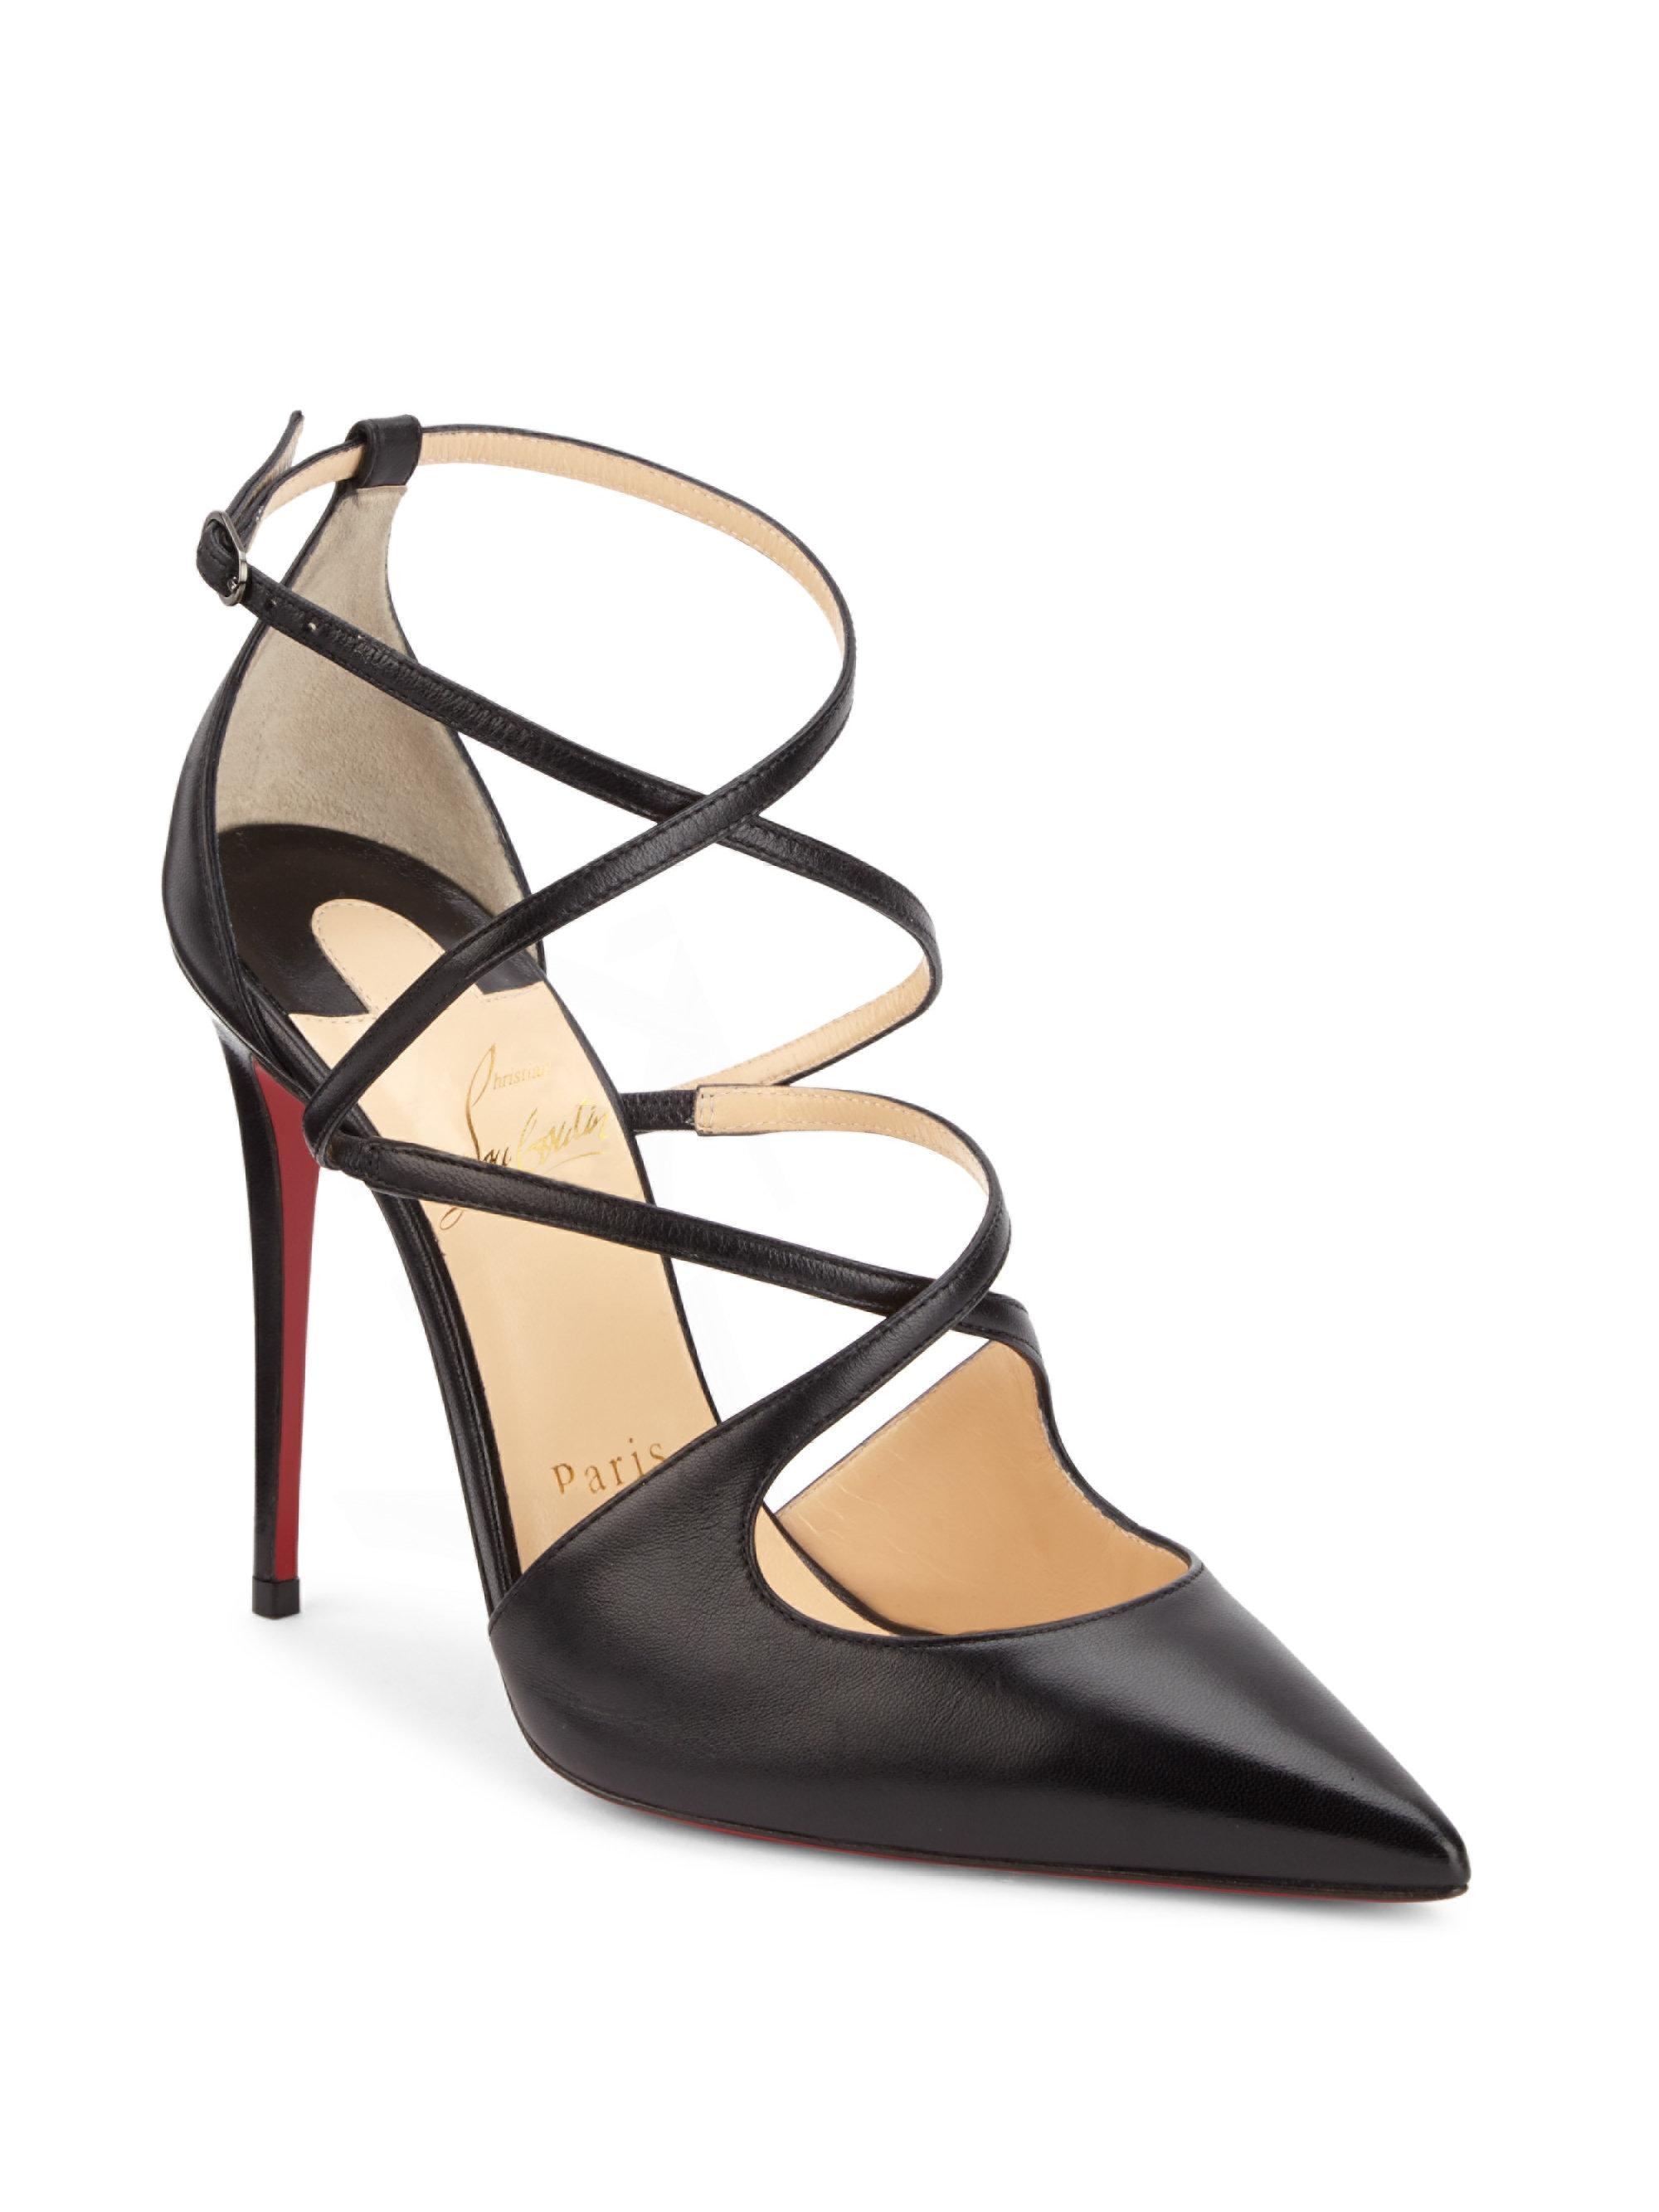 Christian Louboutin Crossfliketa 100 Leather Pumps WEW23